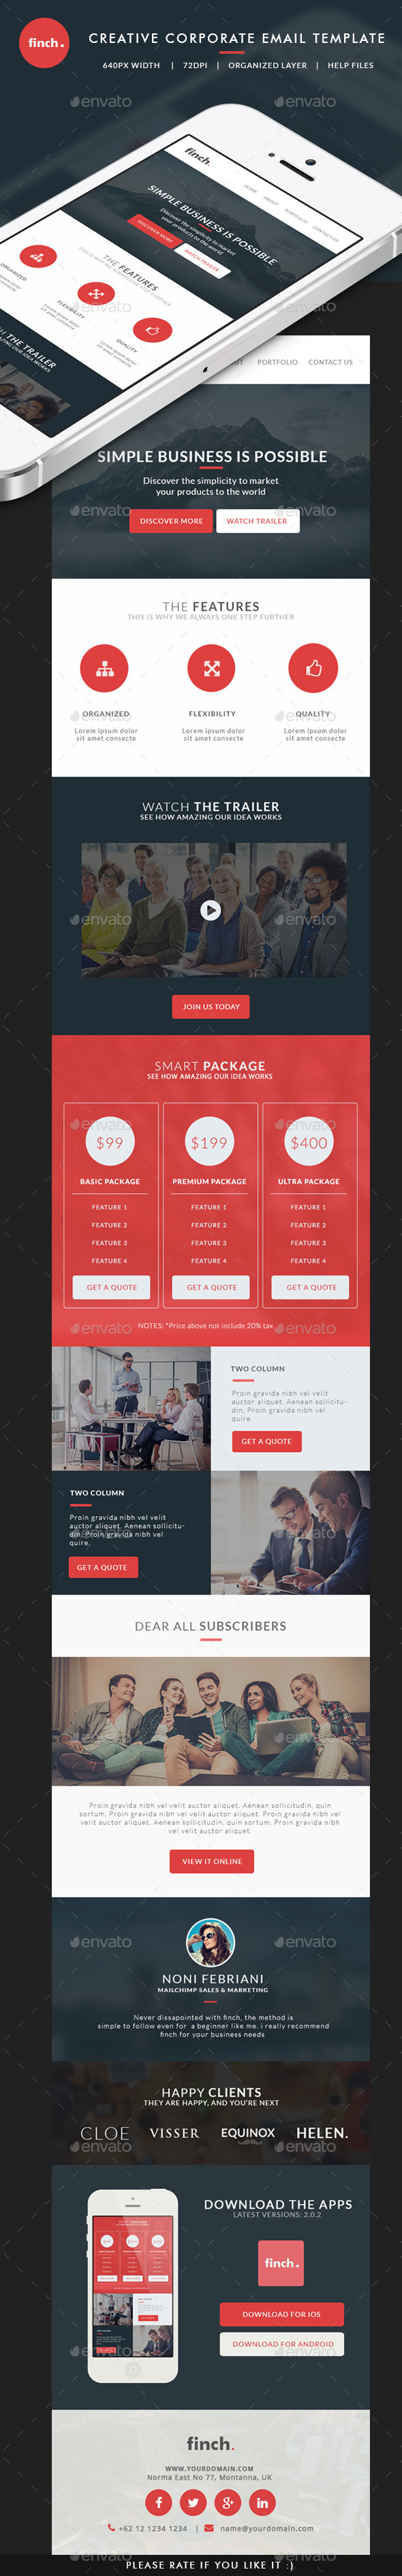 Corporate Email Template - finch - E-newsletters Web Elements